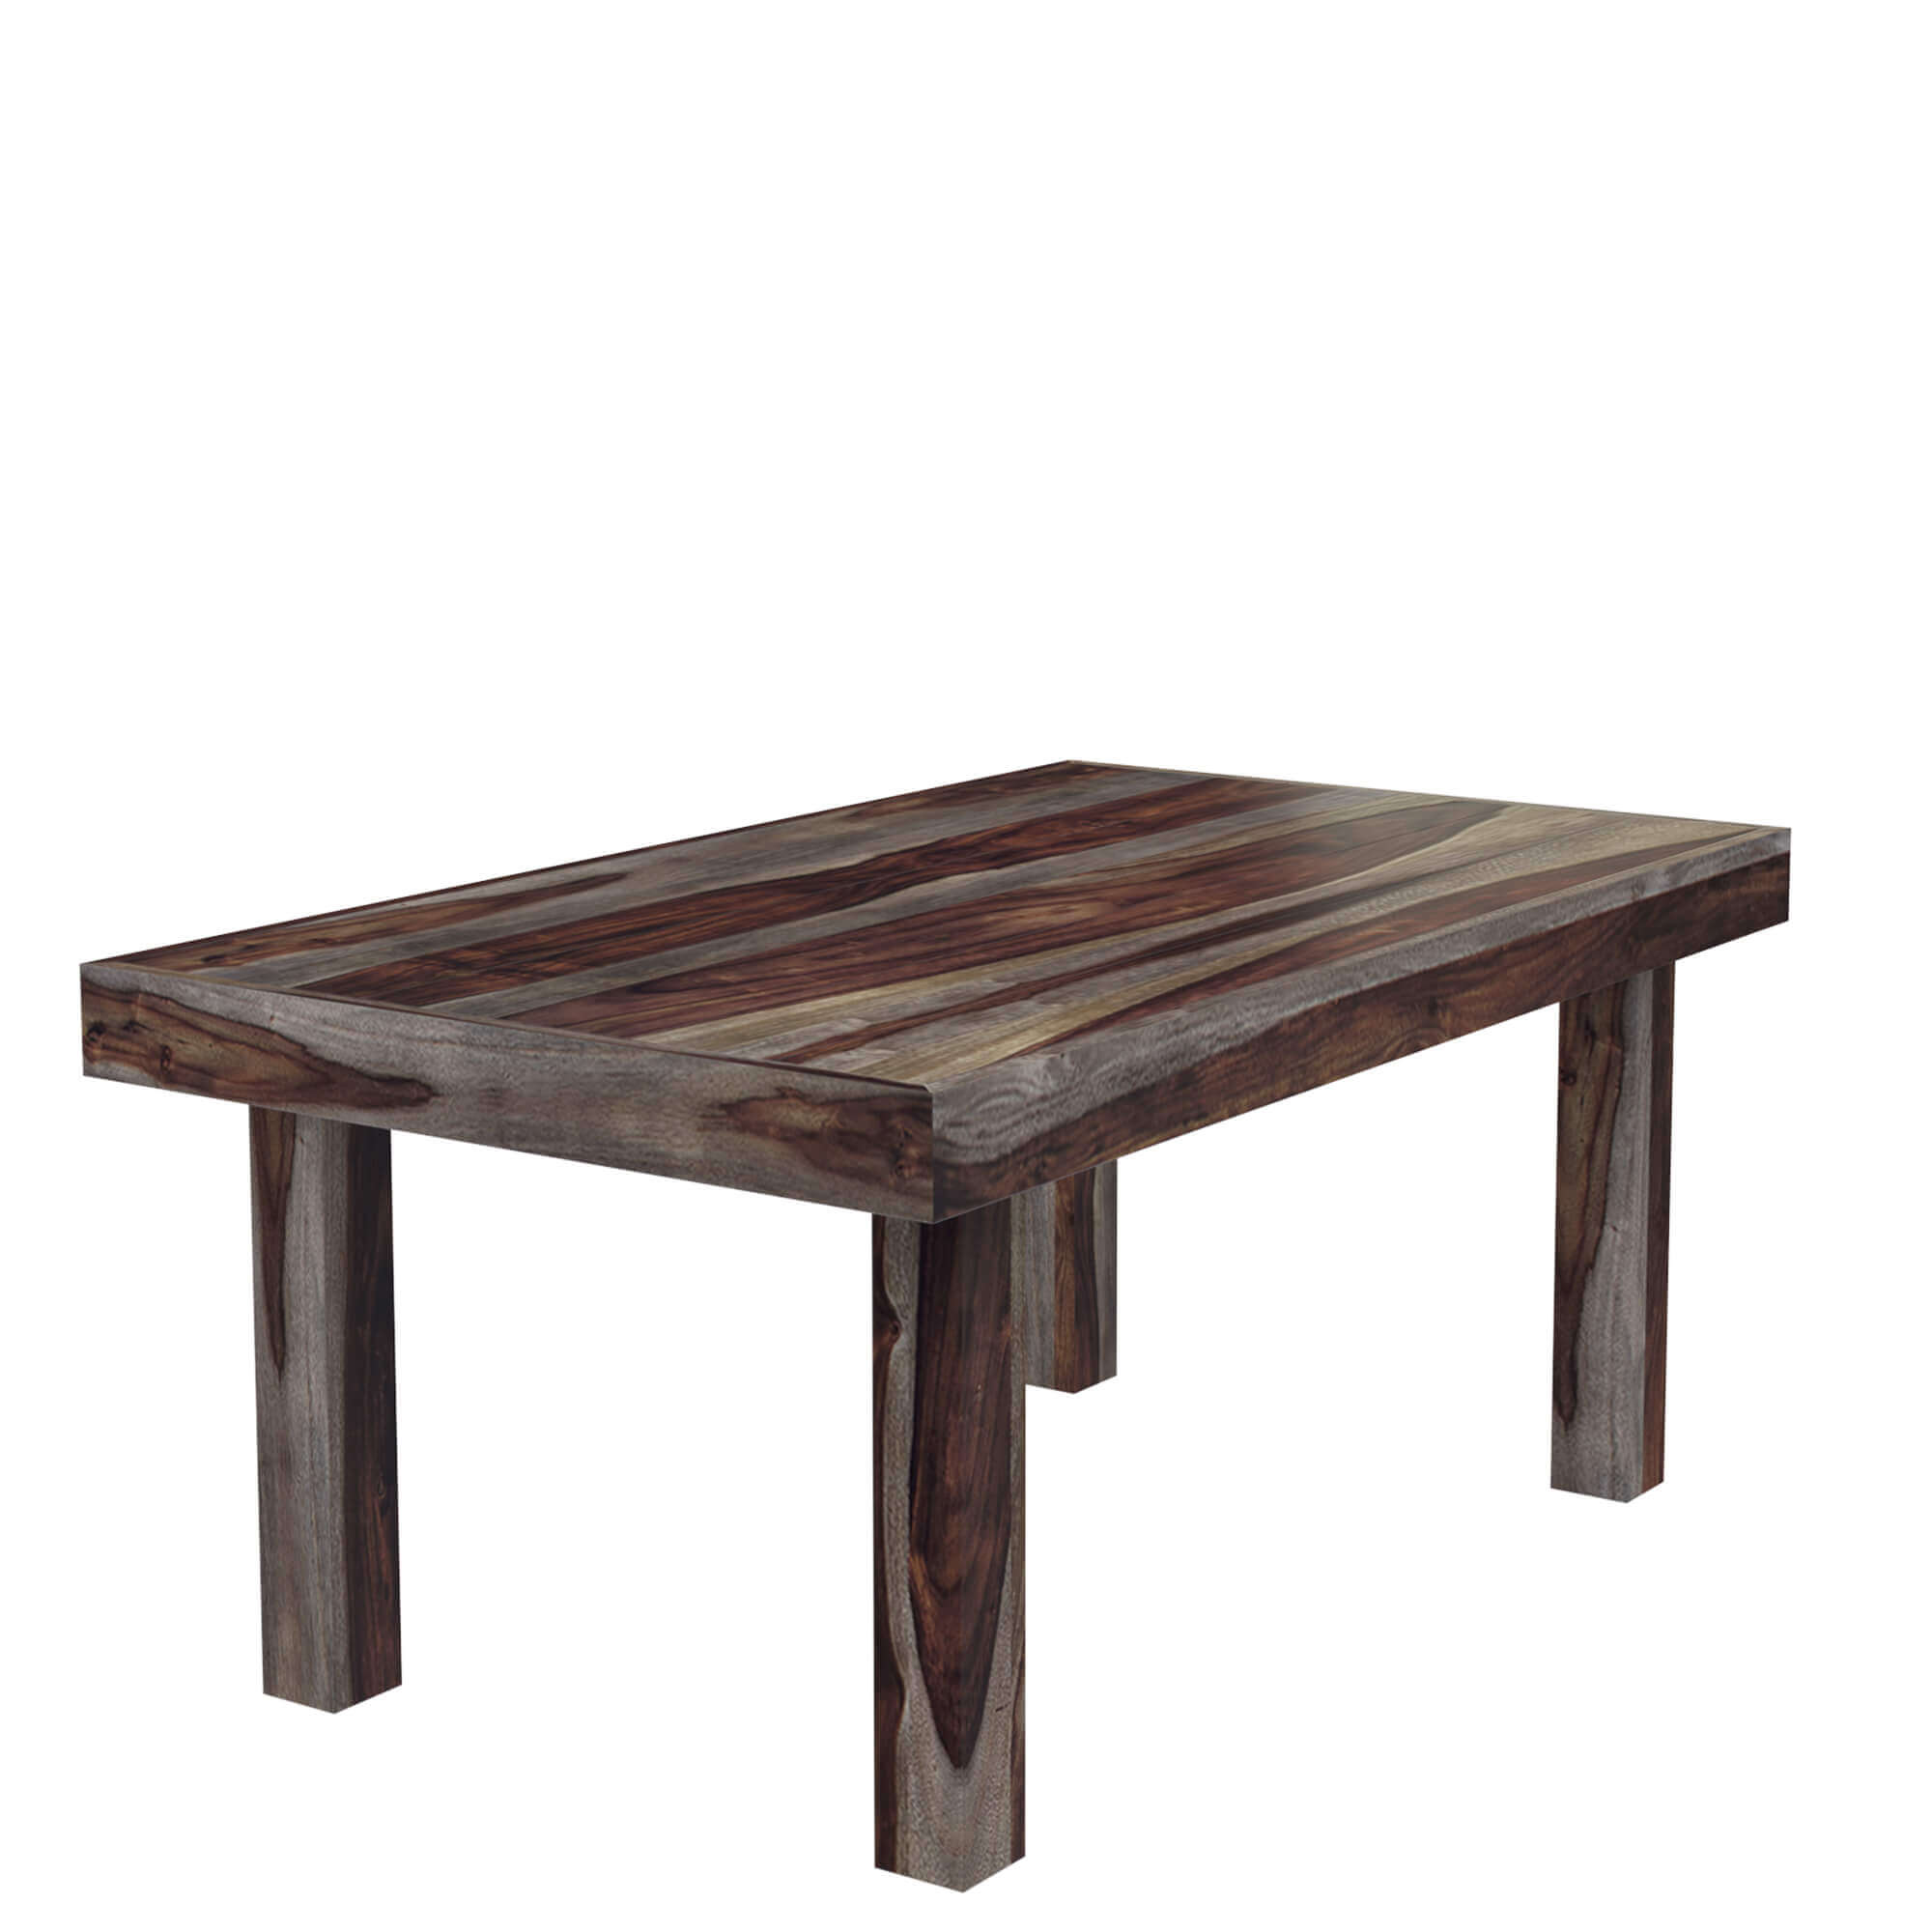 Frisco modern solid wood rectangular rustic dining room table for Contemporary rectangular dining table